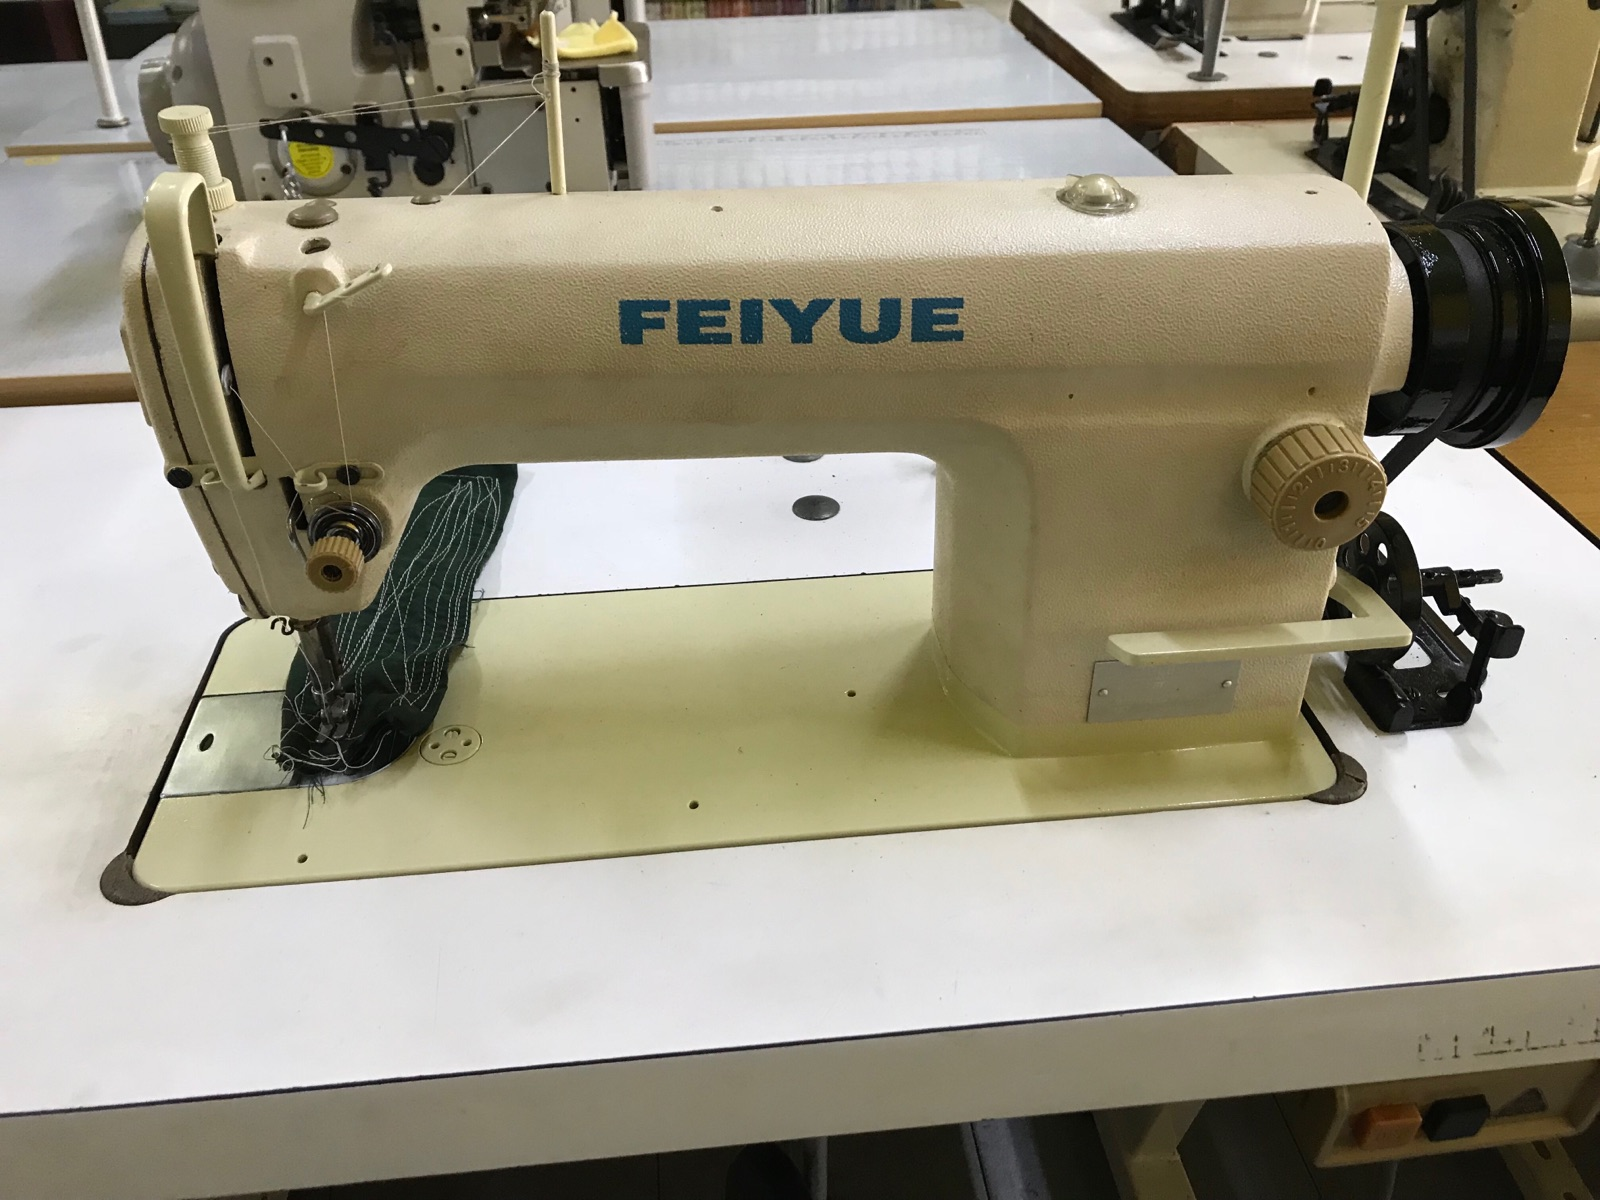 2nd Feiyue Hi Speed Sewing Machine